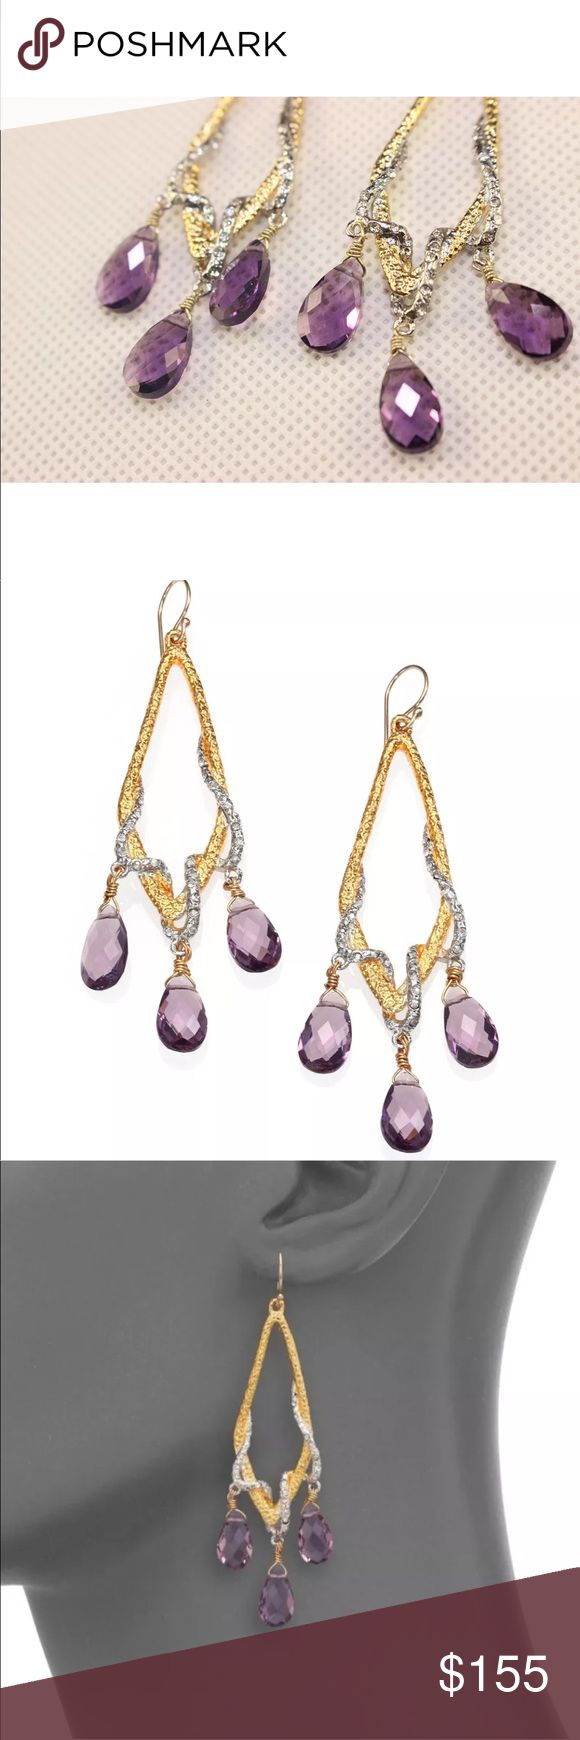 """🔥SALE Alexis Bittar Amethyst Vine Drop Earrings New! Alexis Bittar Amethyst Vine Drop Earrings • Gold & Silver Tone Metal Earrings with pave Swarovski crystals & dangling Hydro Quartz Amethyst gems. Drop about 2"""" long. French hook closure. Brand new without tags. Alexis Bittar Jewelry Earrings"""